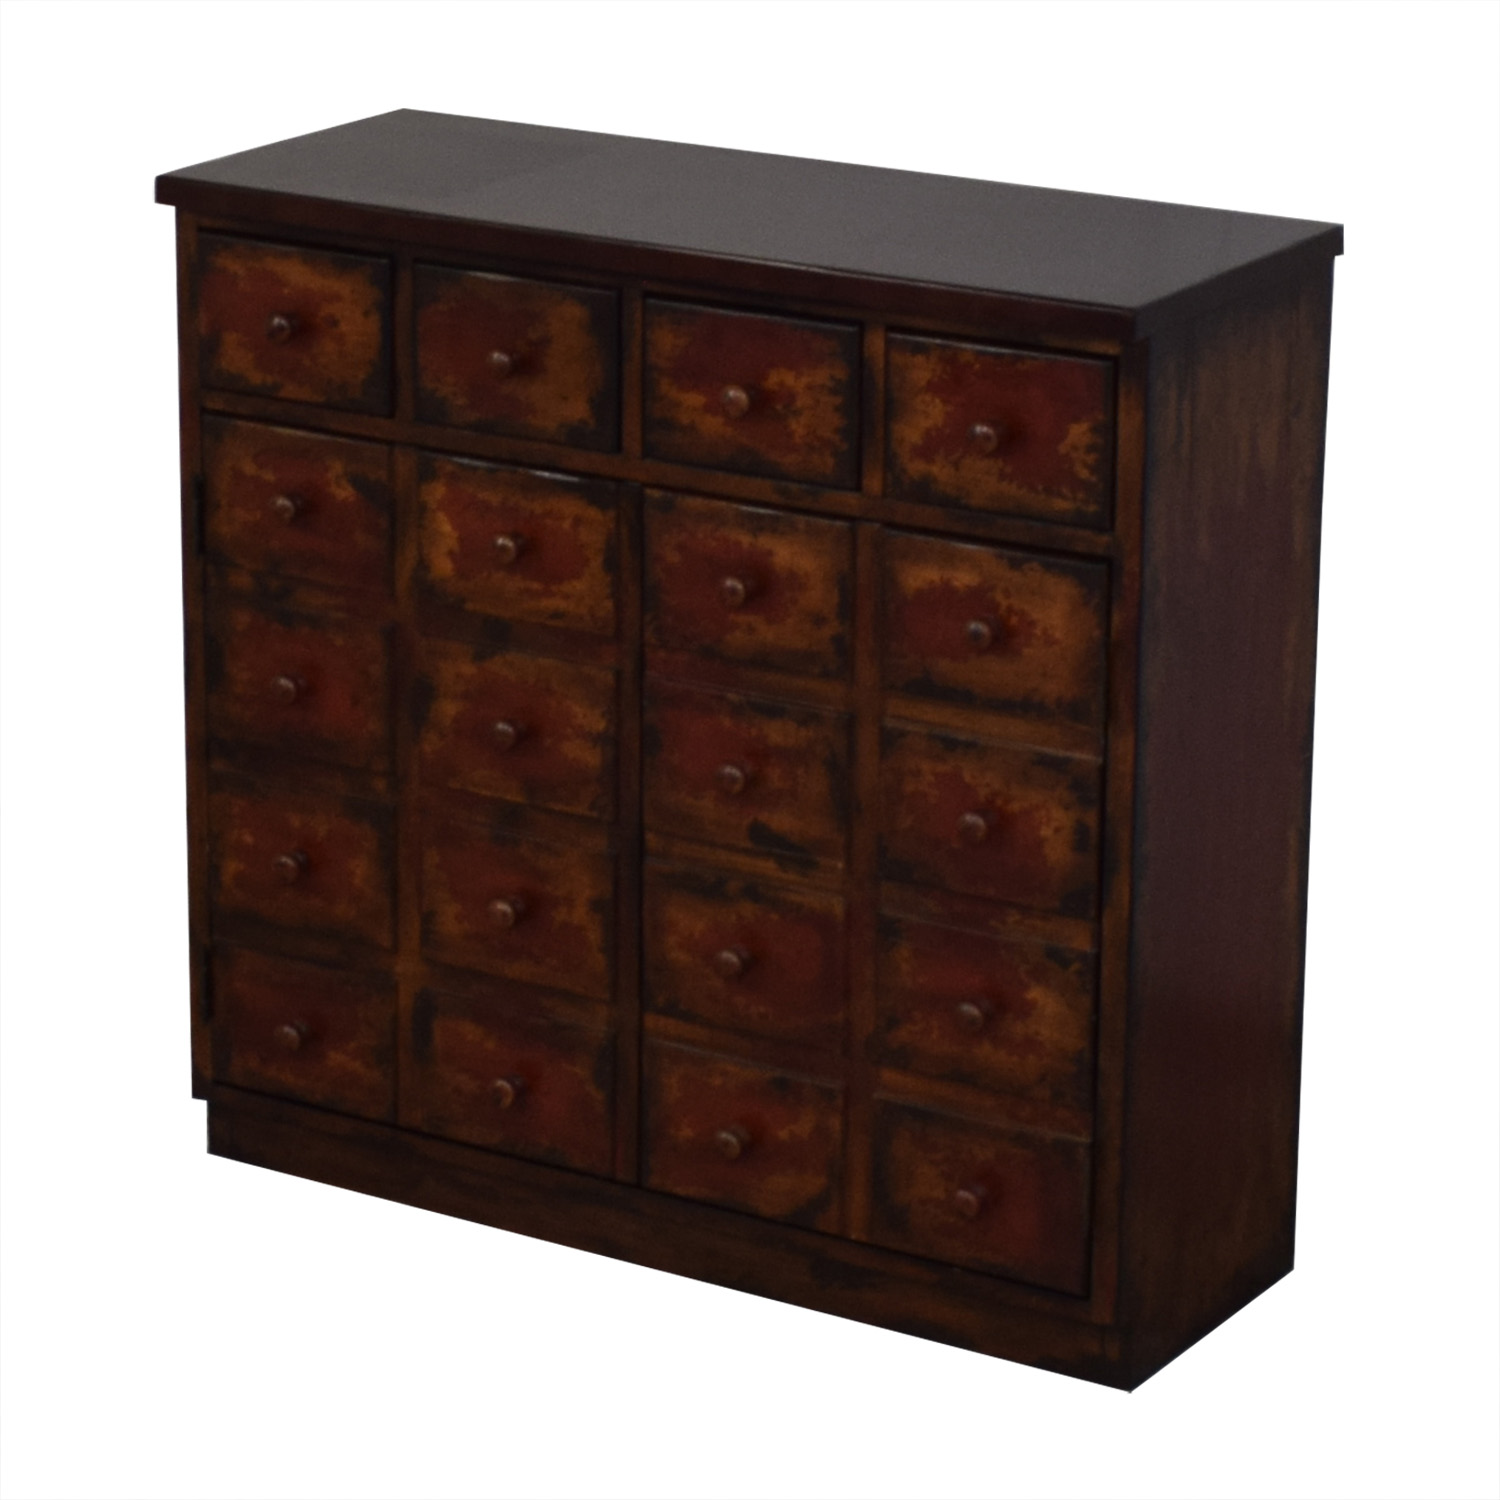 buy Pottery Barn Pottery Barn Andover Cabinet online